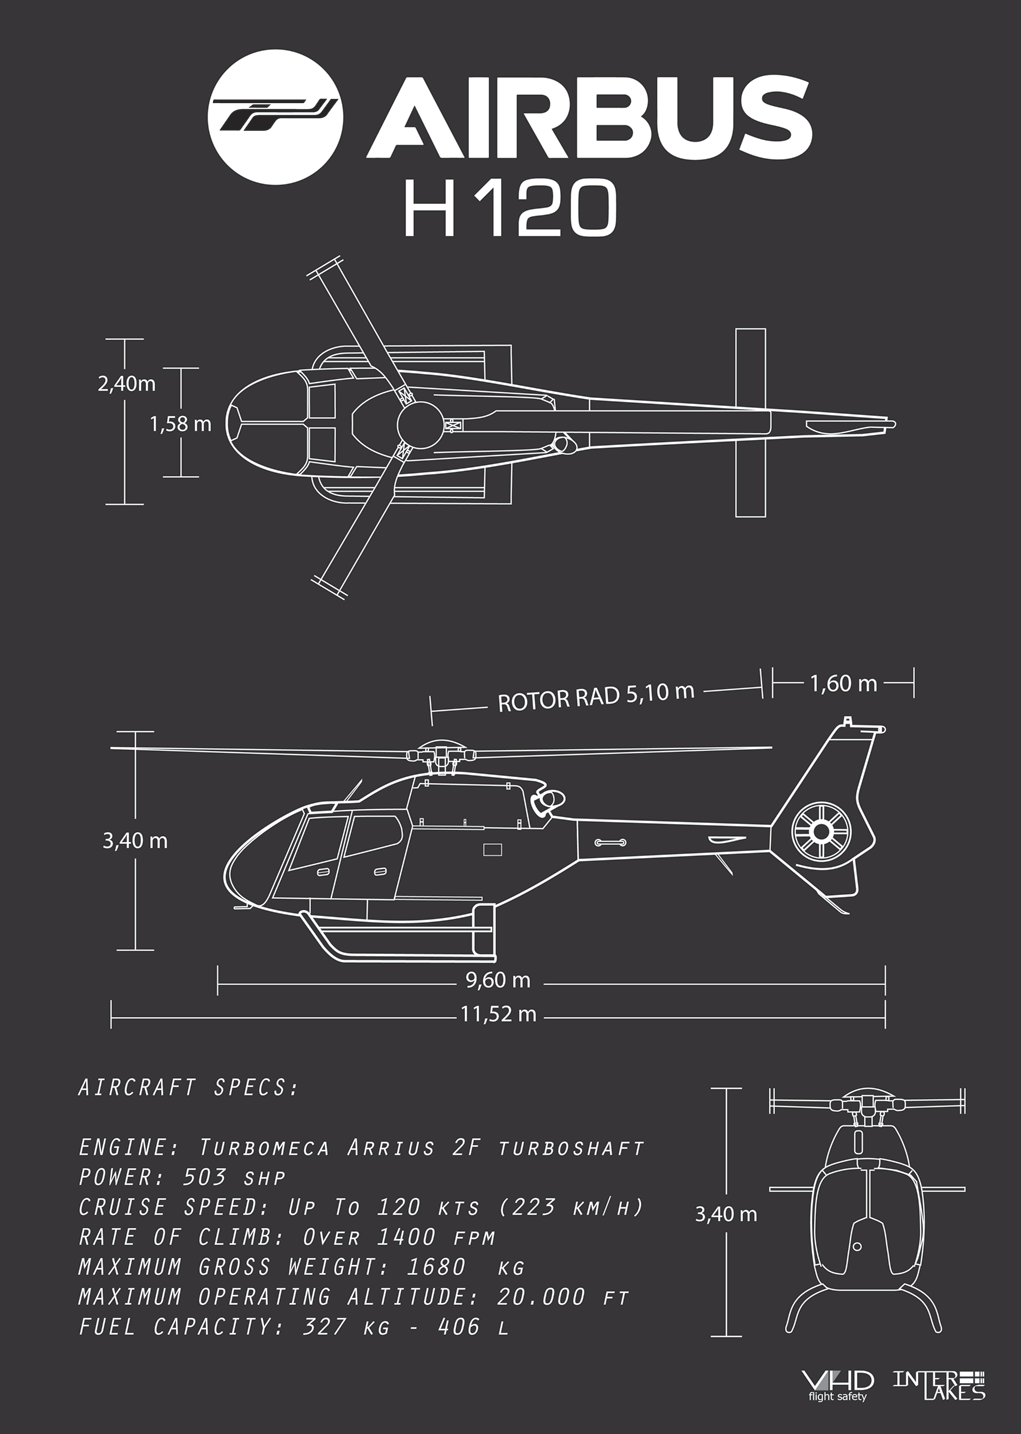 EUROCOPTER AIRBUS H120